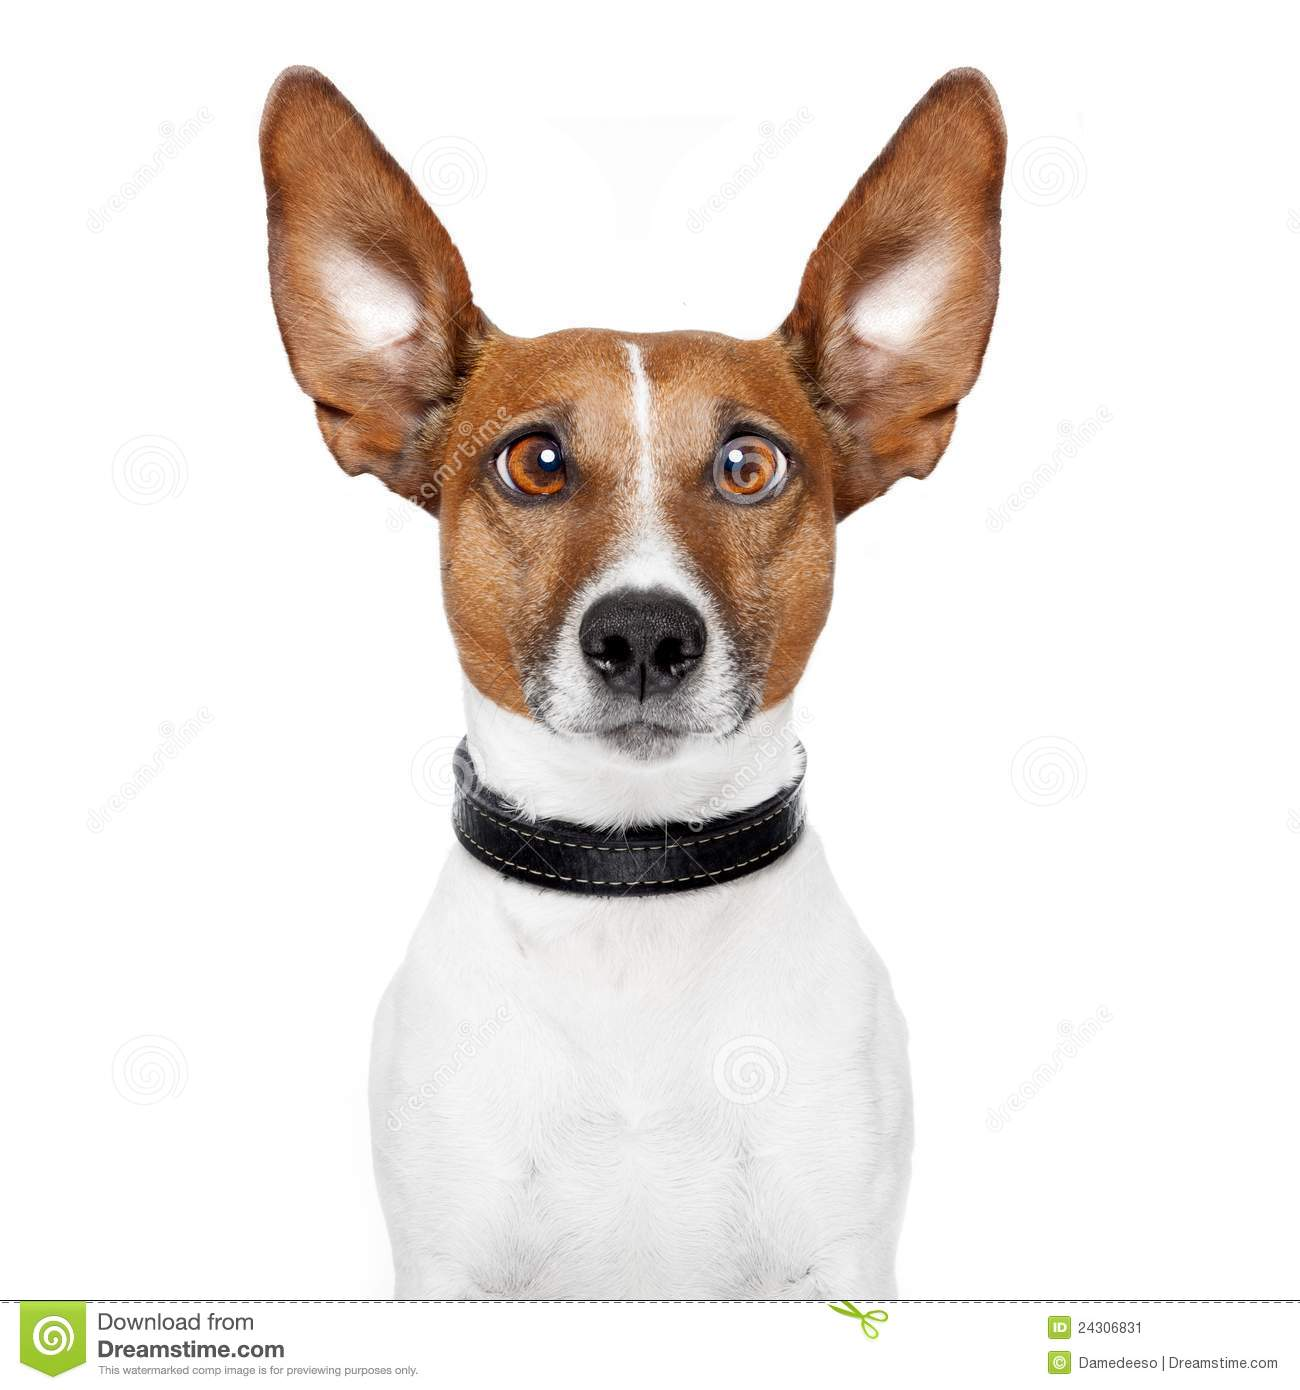 Background Noise Good For Dogs